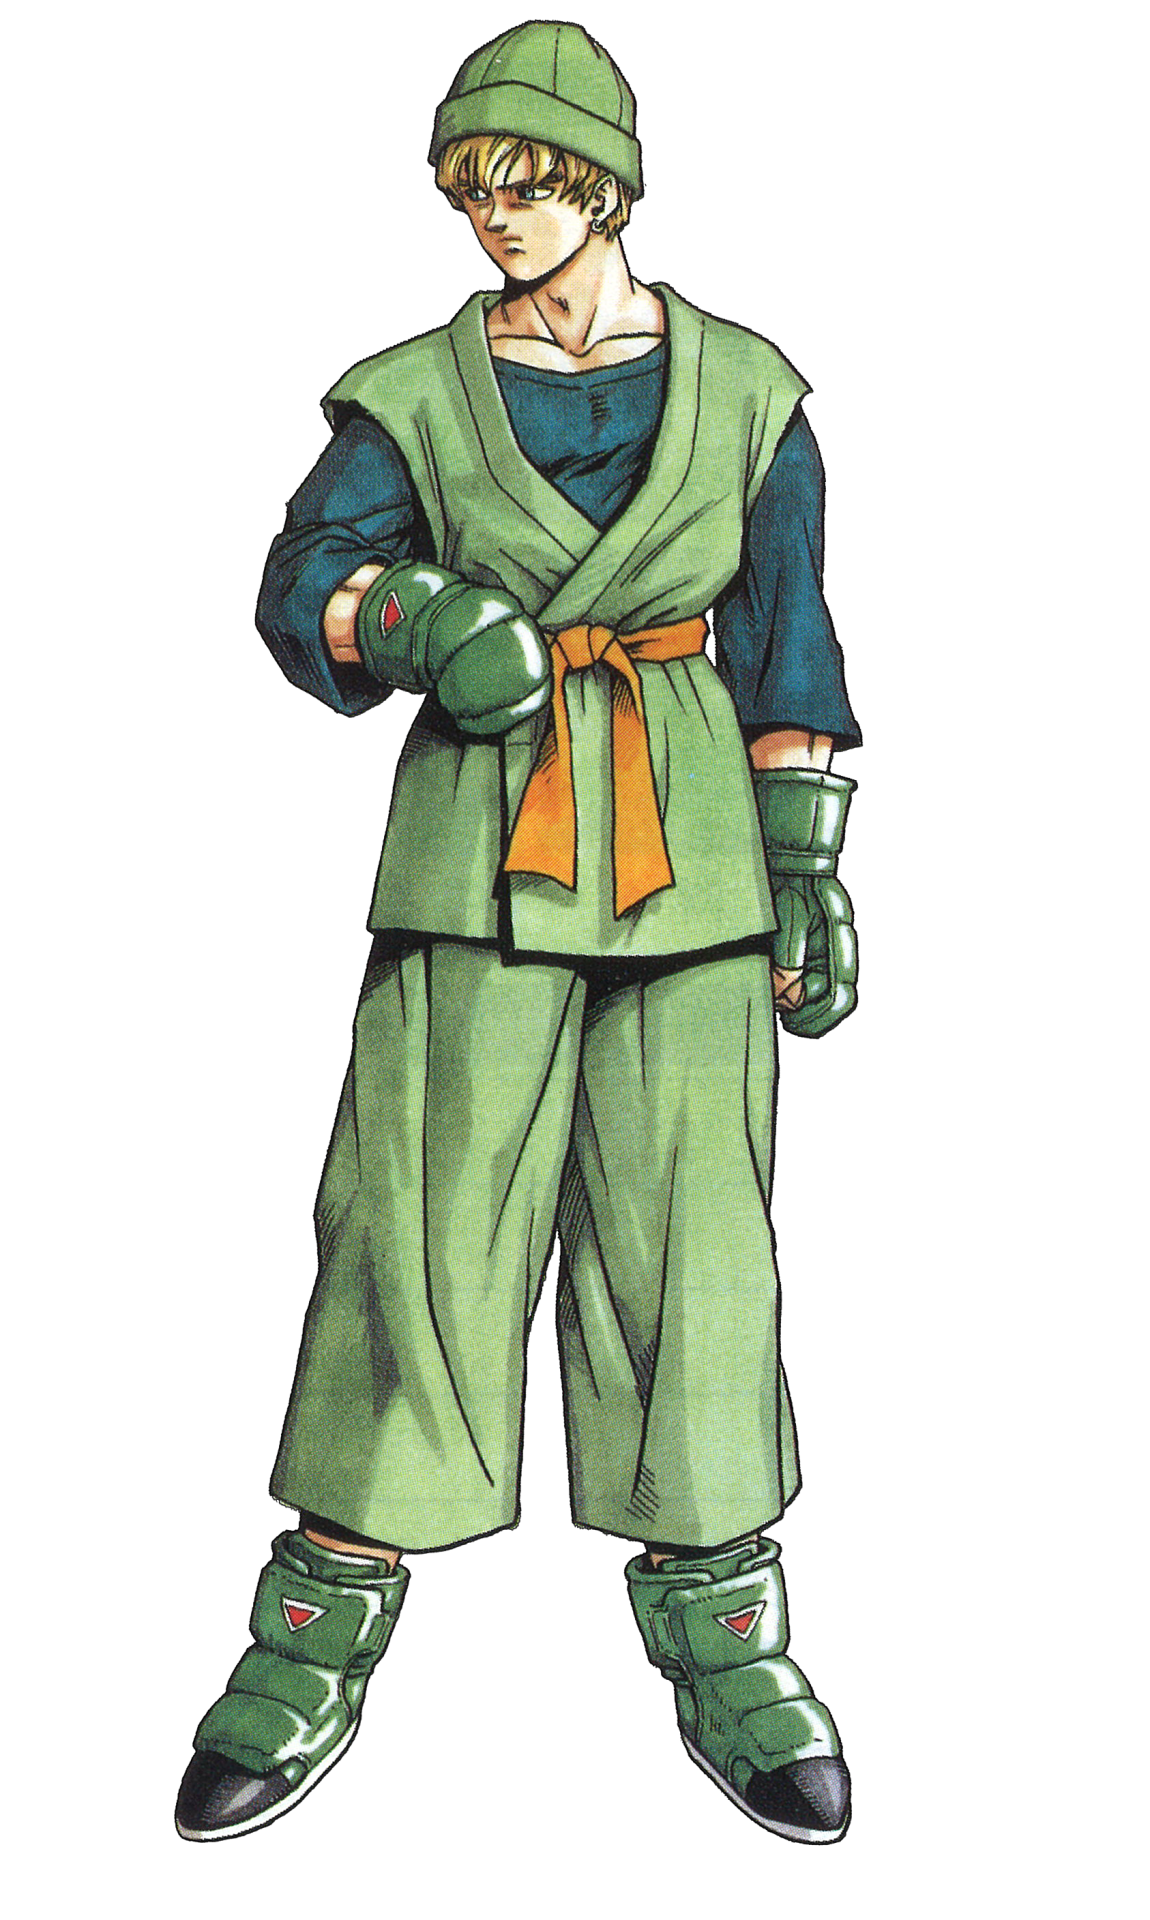 Gren Kuts From Tobal No 1 With The Original Akira Toriyama Artwork And 3d Face Follow Thevideogameartarchive On Tum In 2020 Anime Character Design Anime Artwork Art